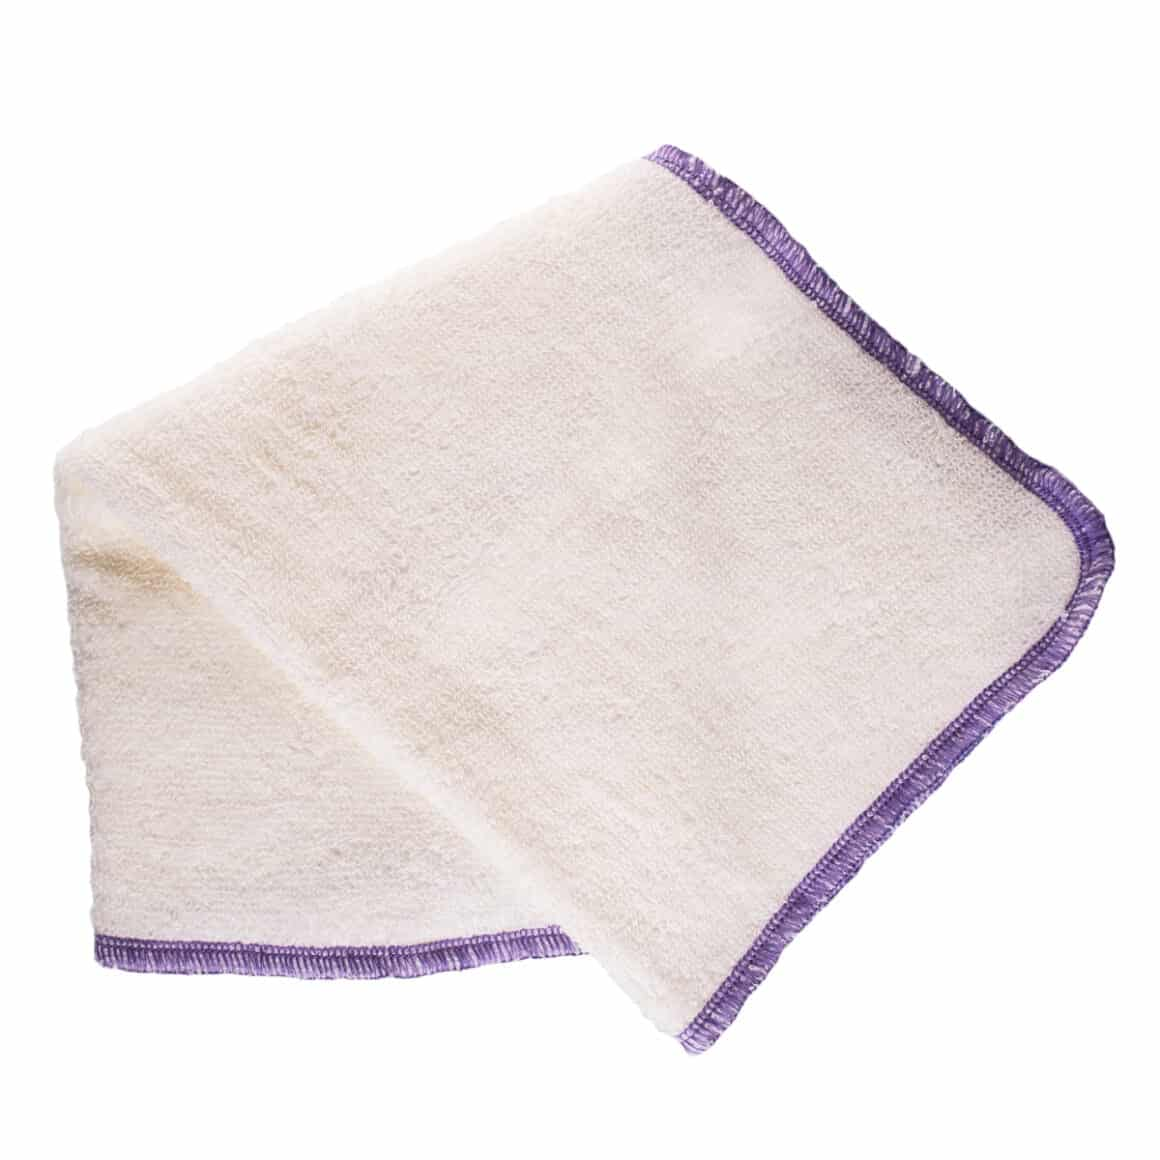 Living Libations Organic Hemp Face Cloths are soft, durable, and have perfect amount of texture for oil cleansing the face and body.